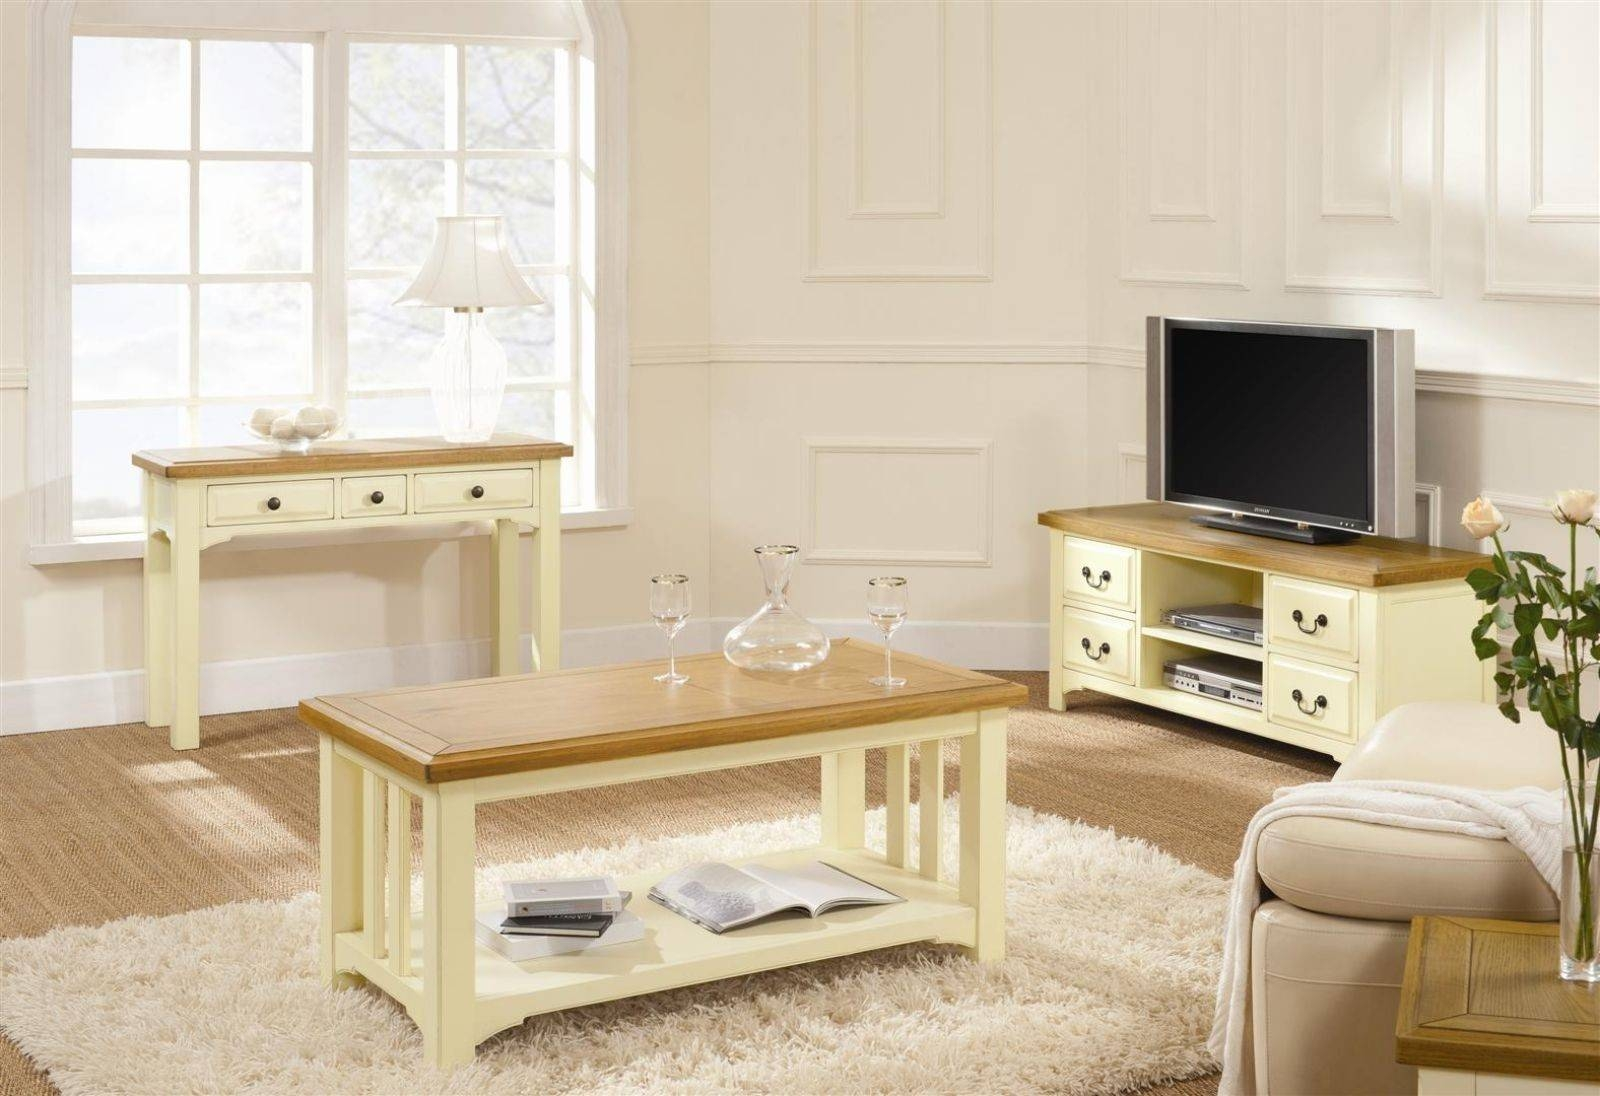 Furniture. Cream Coffee Table Ideas: Rectangle Modern Wooden Cream intended for Oak and Cream Coffee Tables (Image 20 of 30)